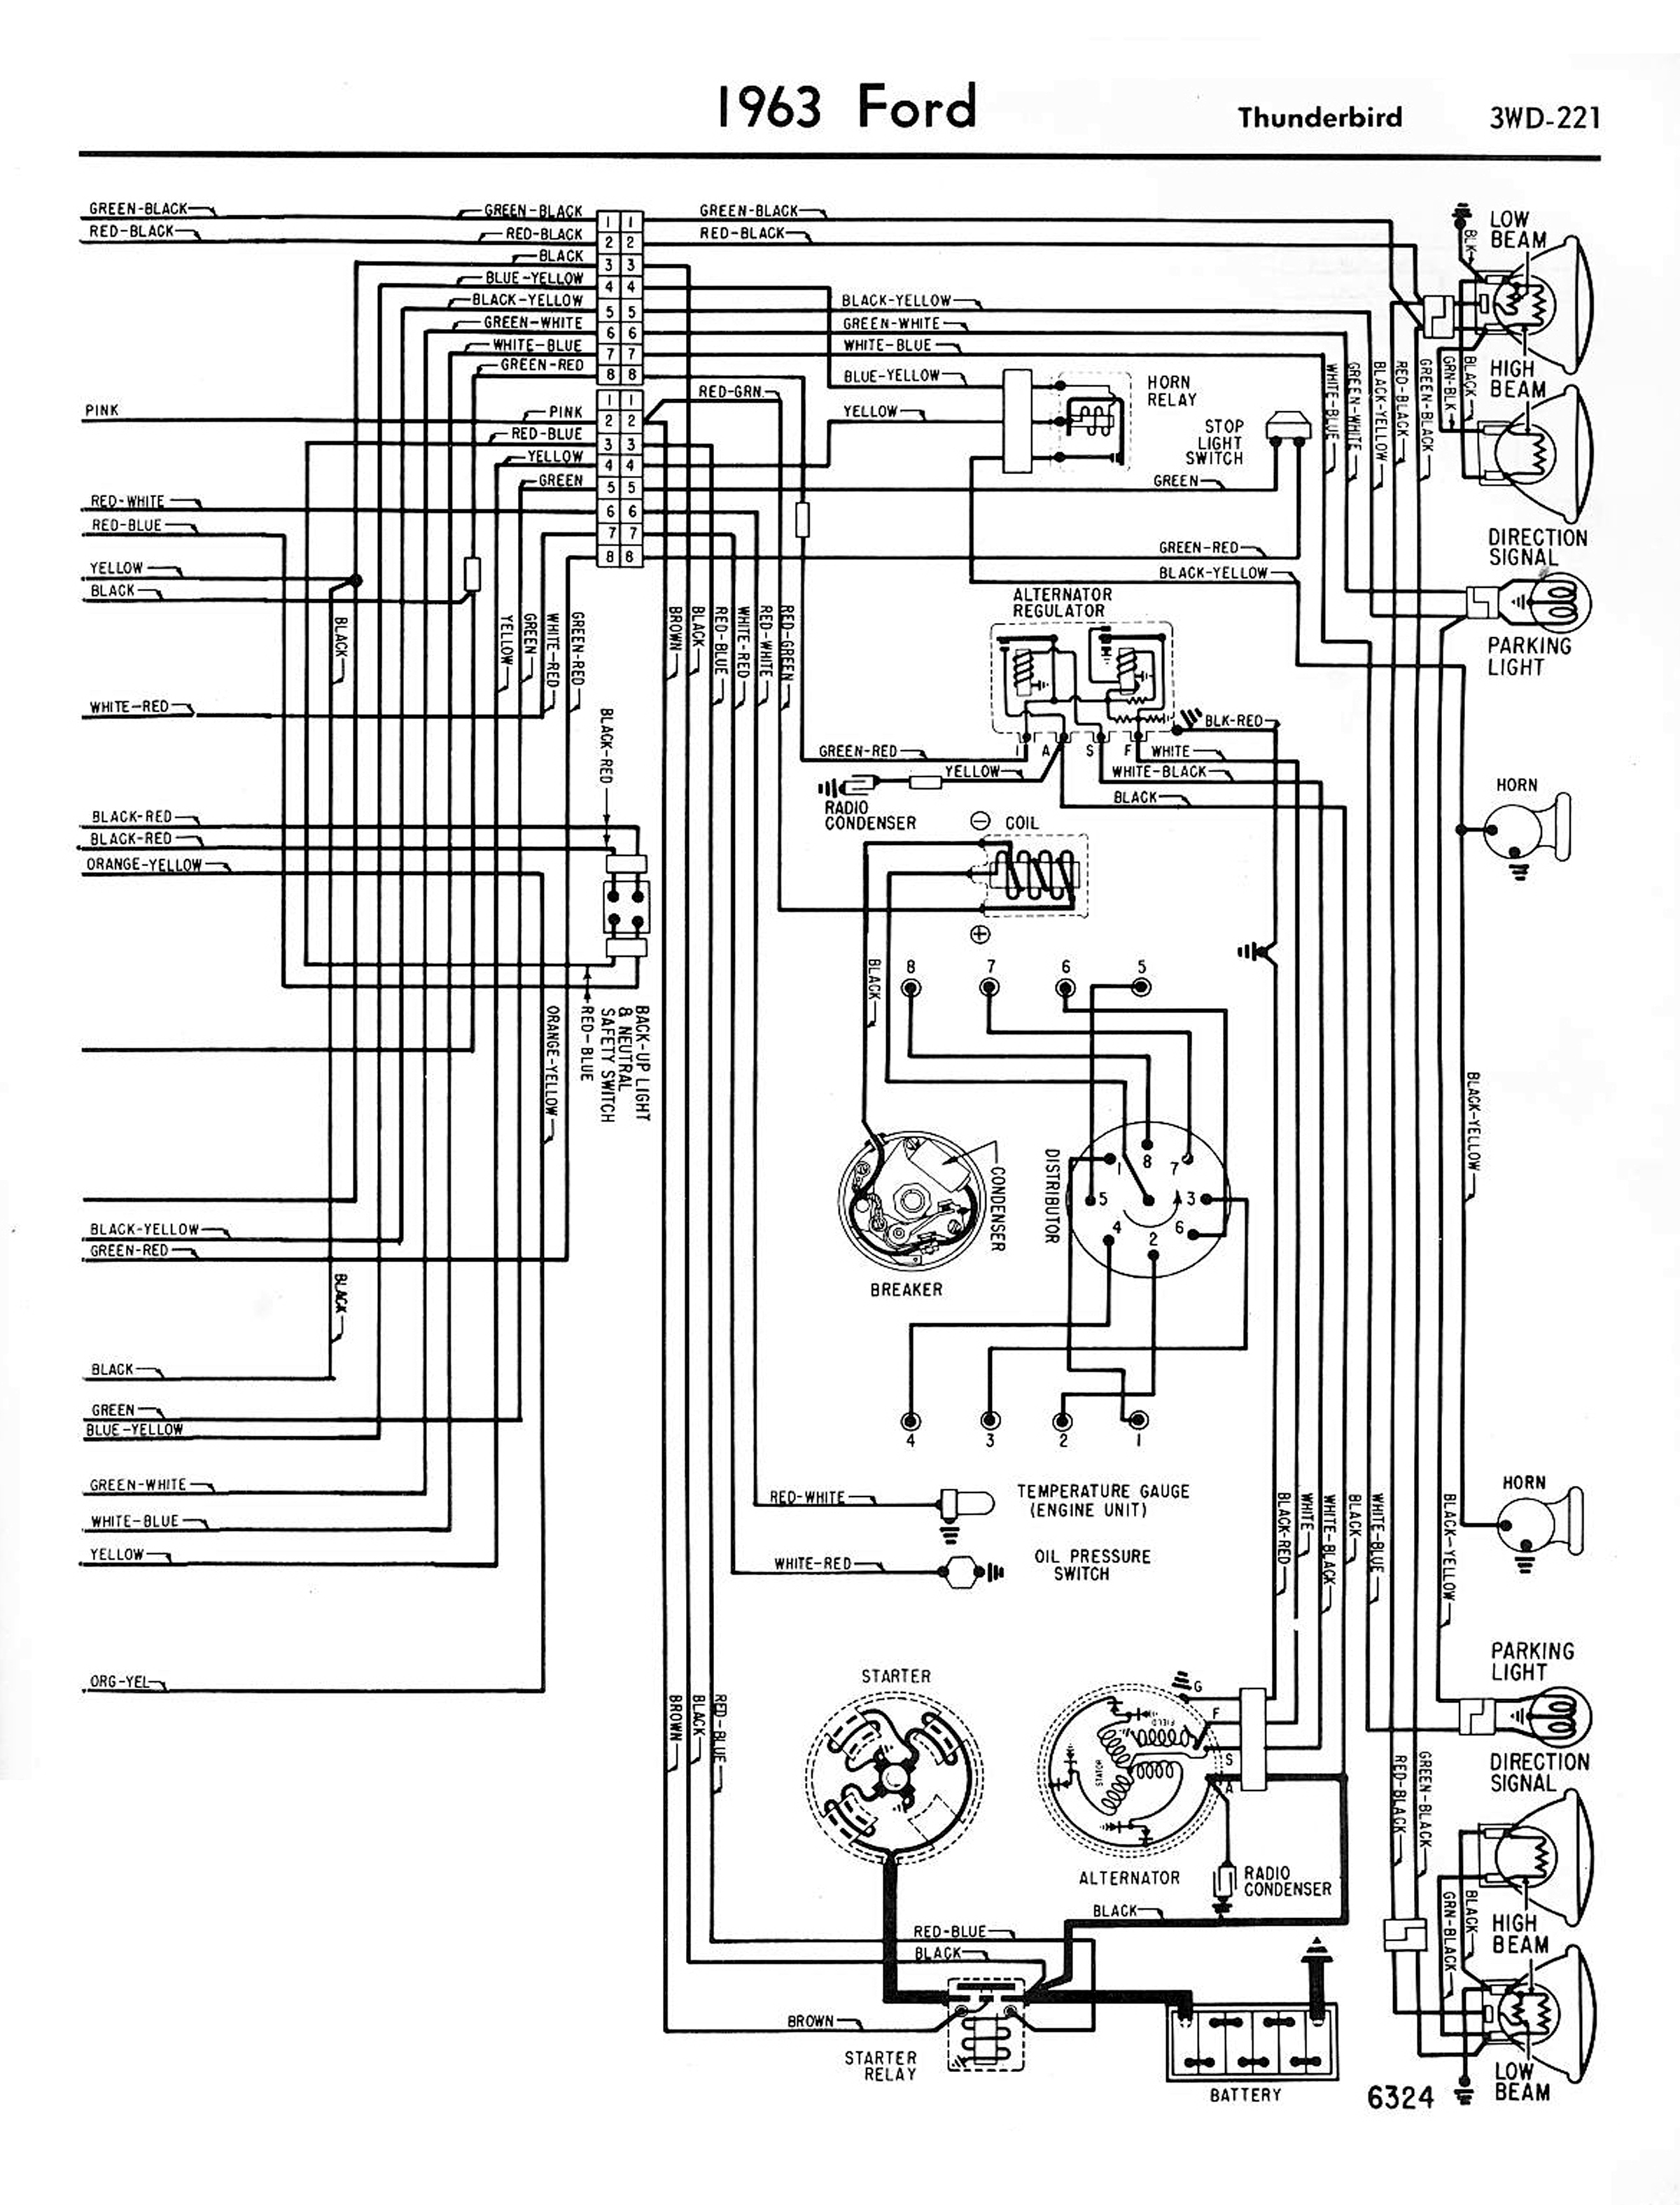 66 mustang wiring diagram 2000 yamaha r6 tail light ford f 250 for 1963 turn signal switch best library1958 68 electrical schematics rh squarebirds